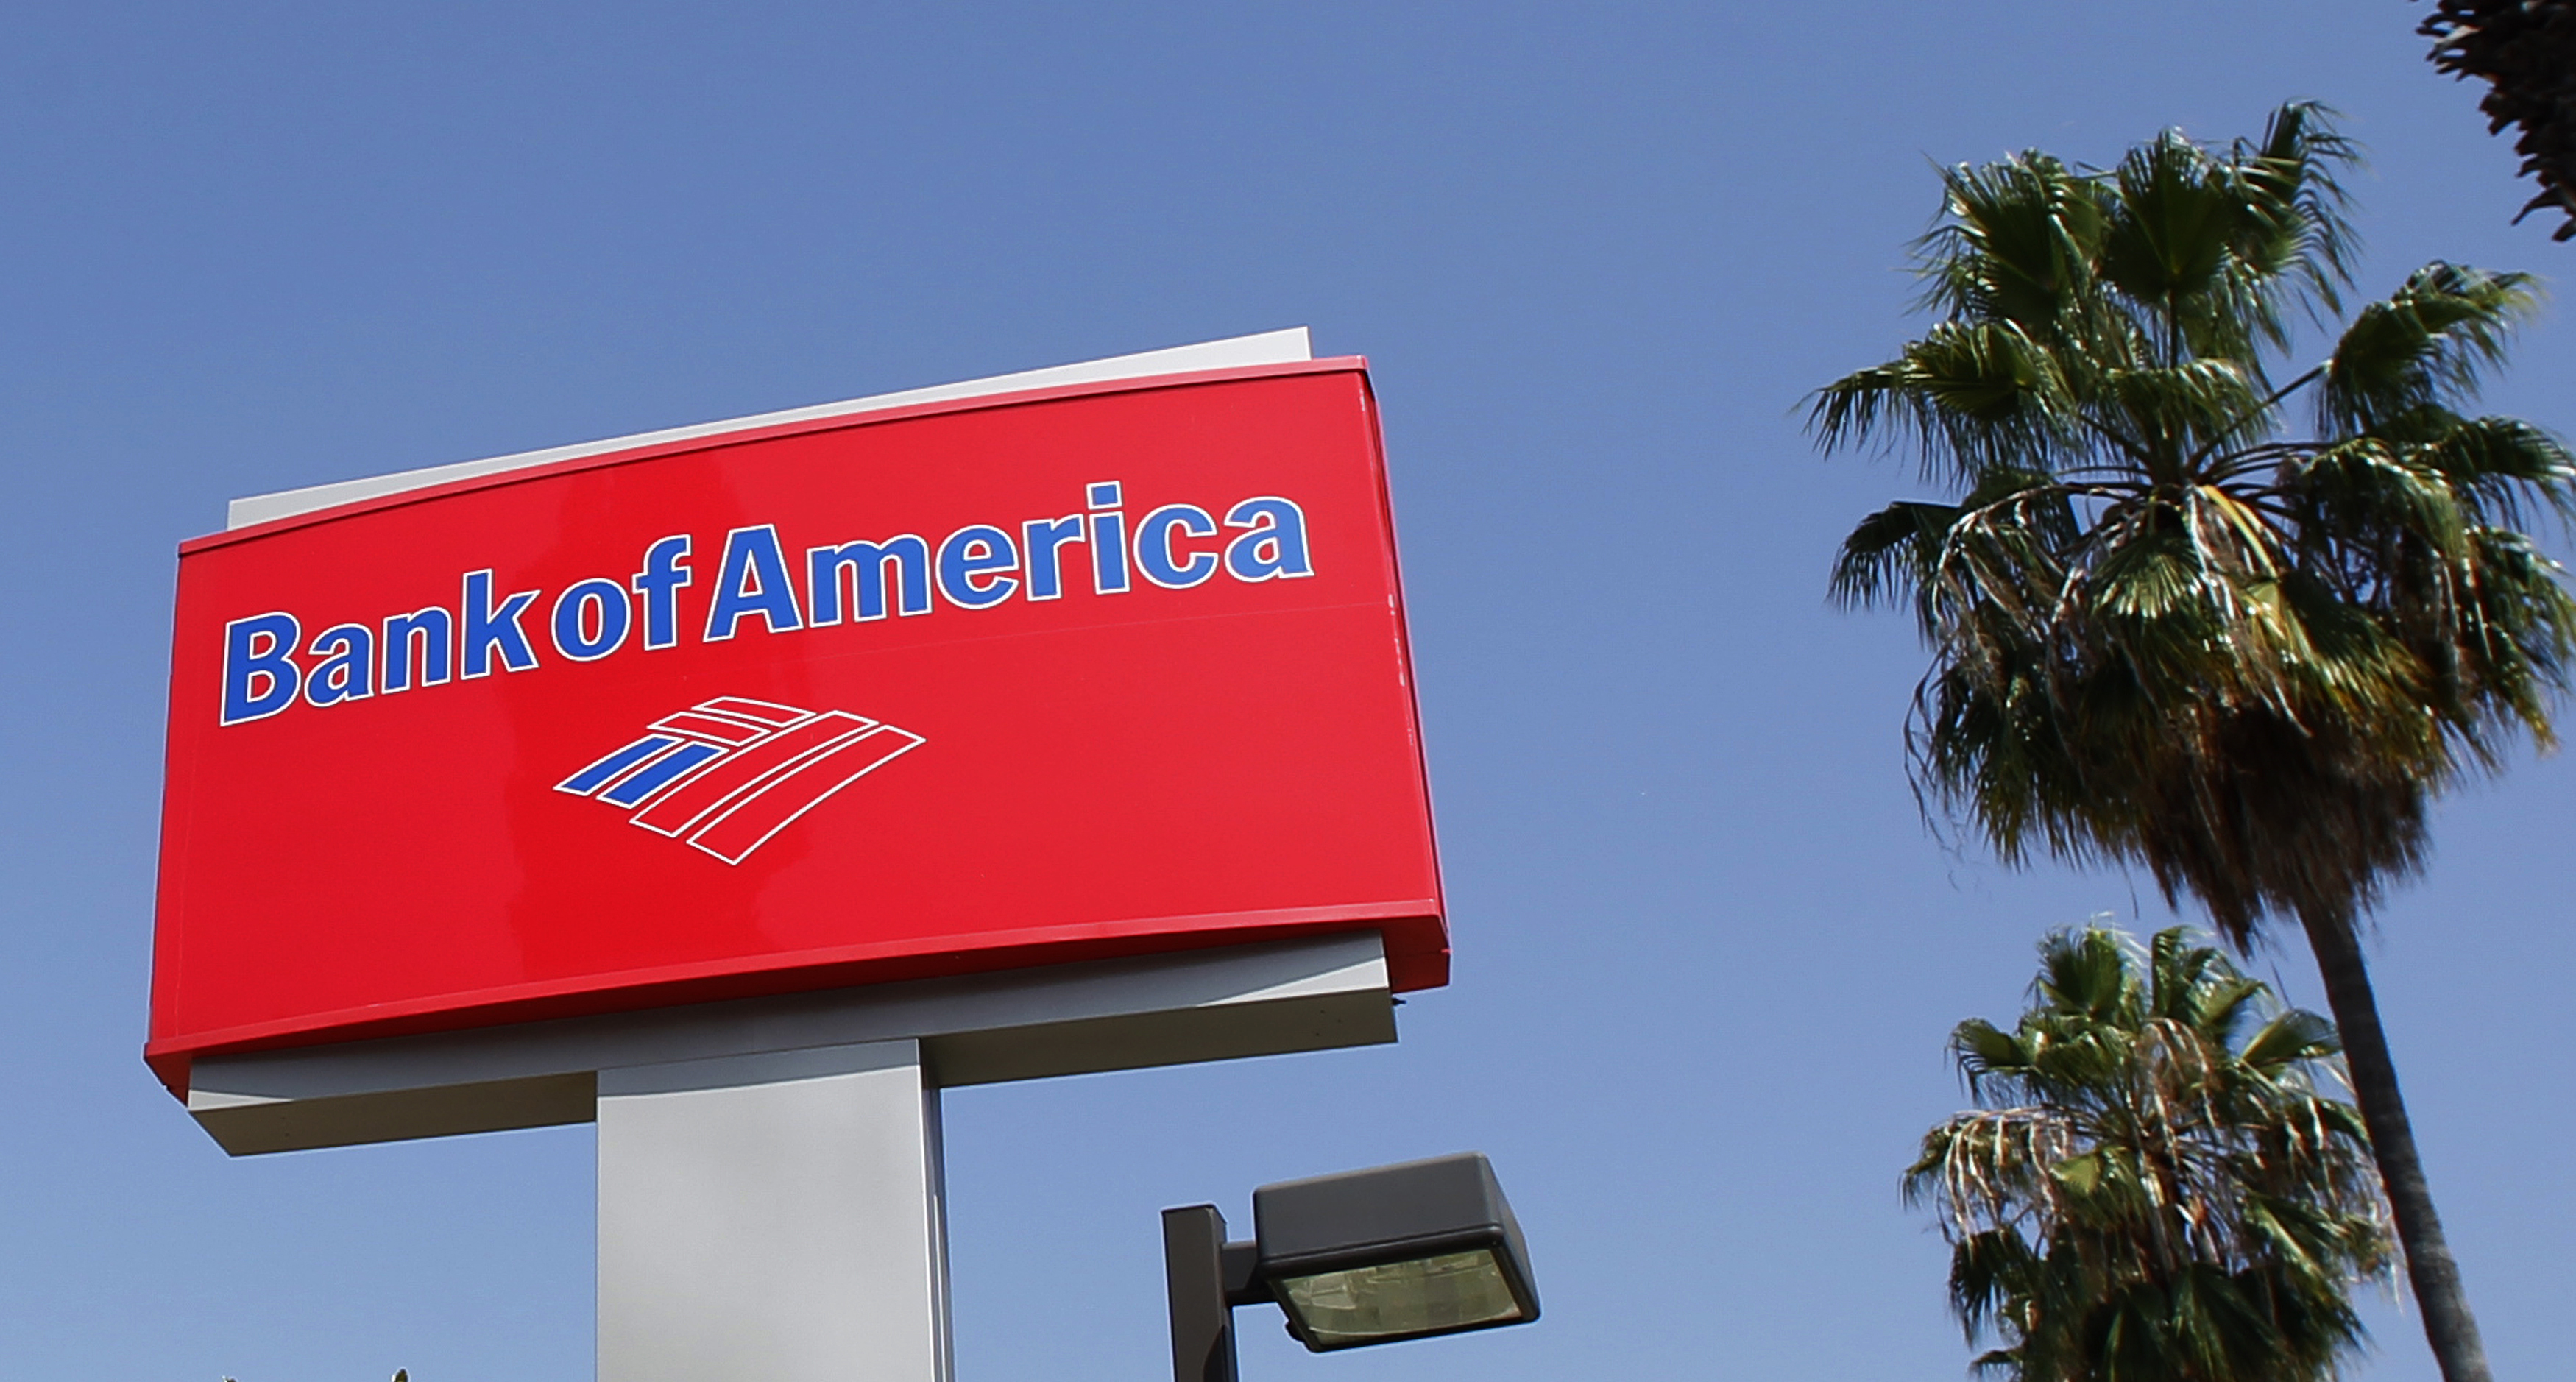 A sign for a Bank of America office is pictured in Burbank, California August 19, 2011. Bank of America Corp plans to cut 3,500 jobs in the next few weeks as CEO Brian Moynihan tries to come to grips with the bank's $1 trillion pile of problem home mortgages. REUTERS/Fred Prouser  (UNITED STATES - Tags: BUSINESS)